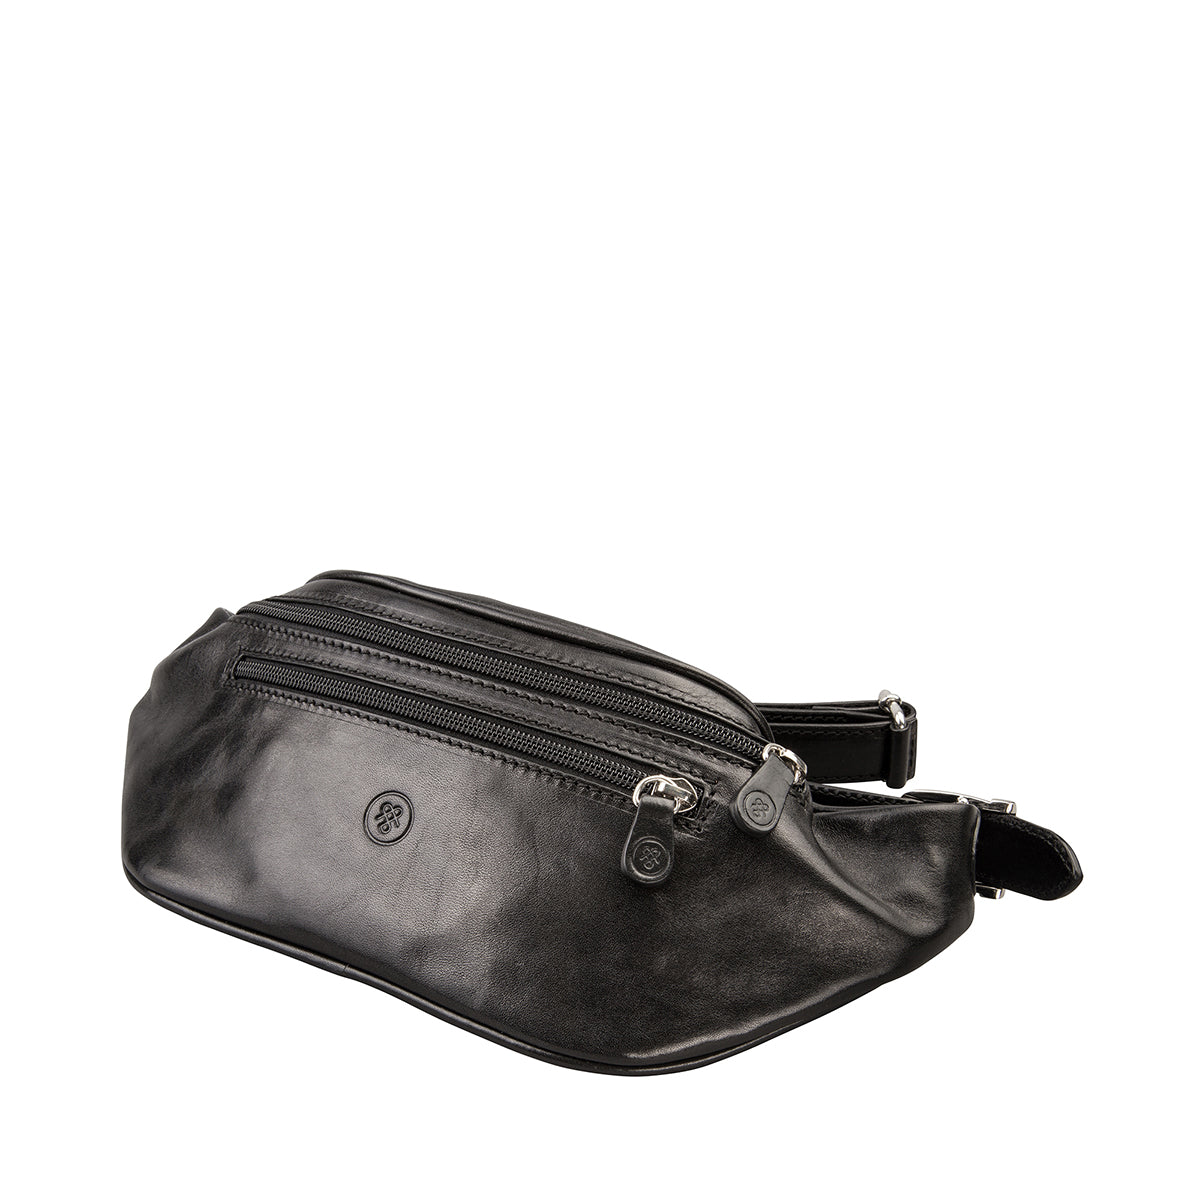 Image 2 of the 'Centolla' Black Veg-Tanned Leather Waist Bag